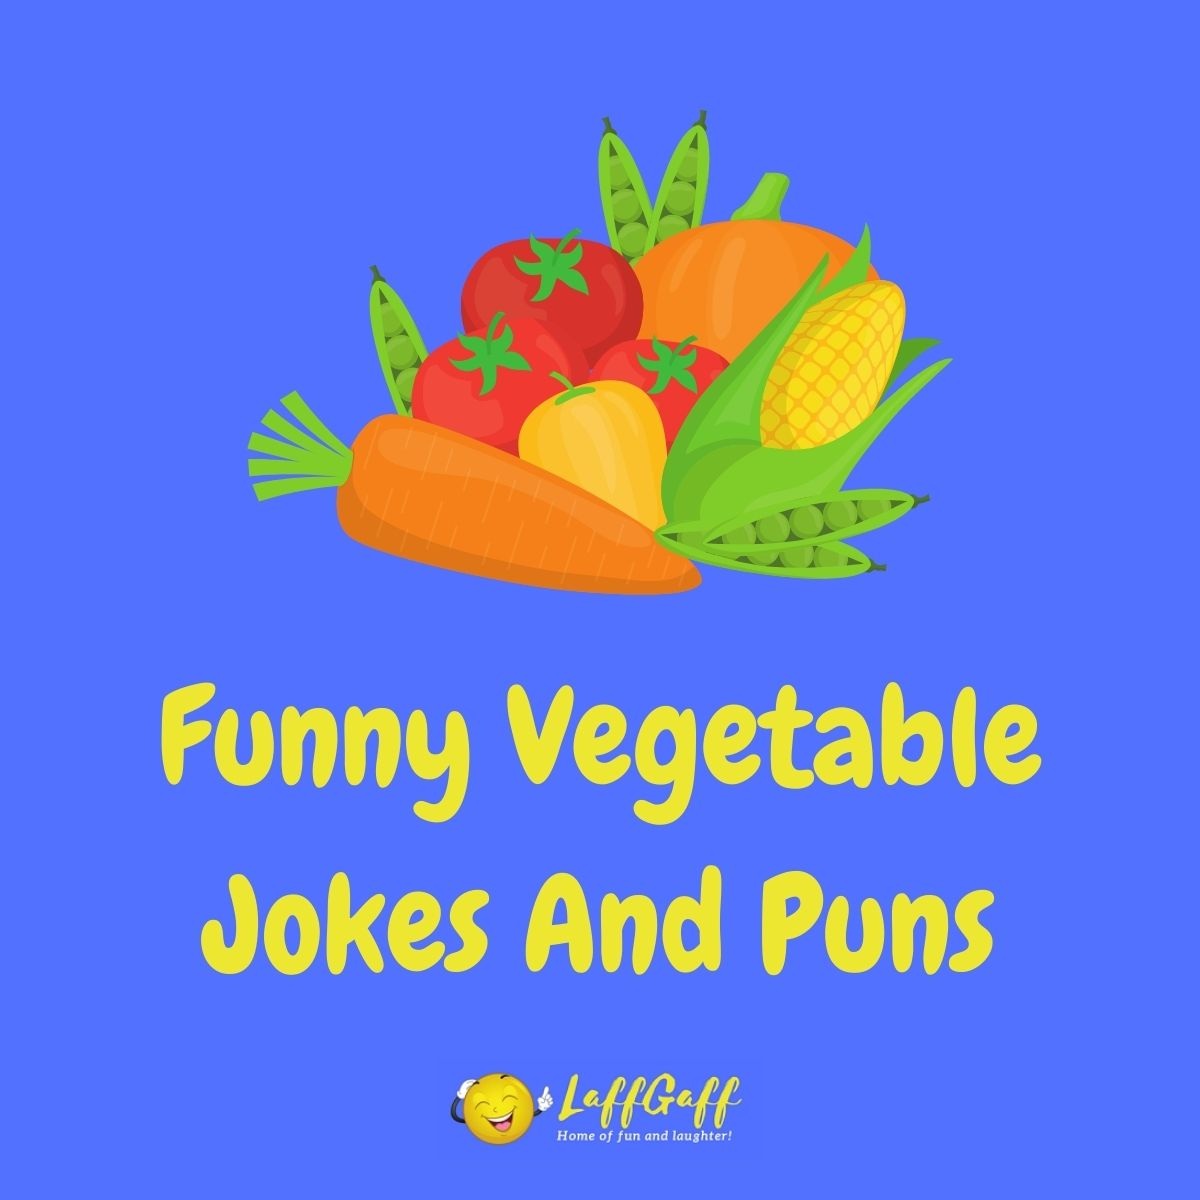 Featured image for a page of funny vegetable jokes and puns.